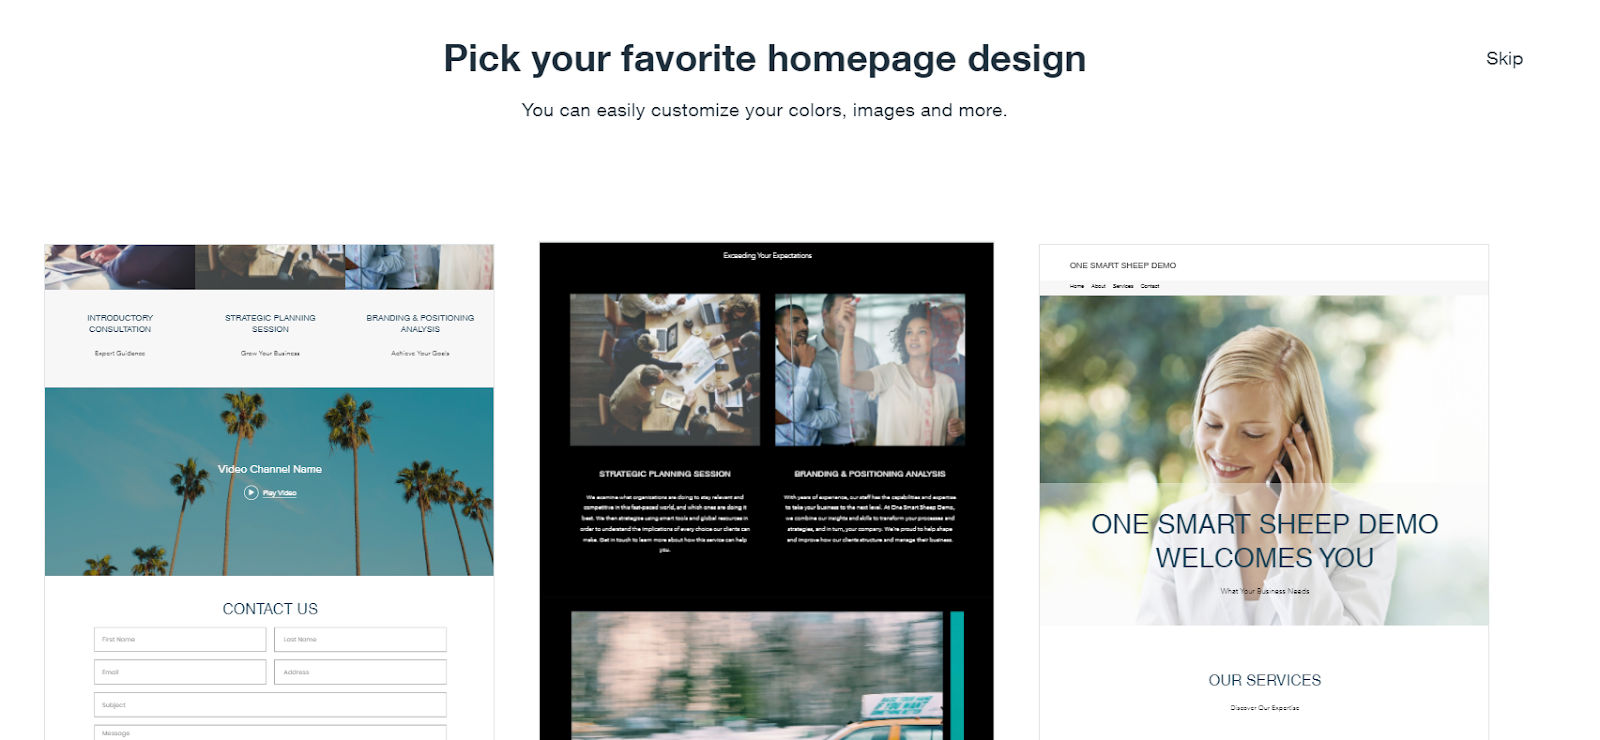 Pick Your Web Design For Your Small Business Website